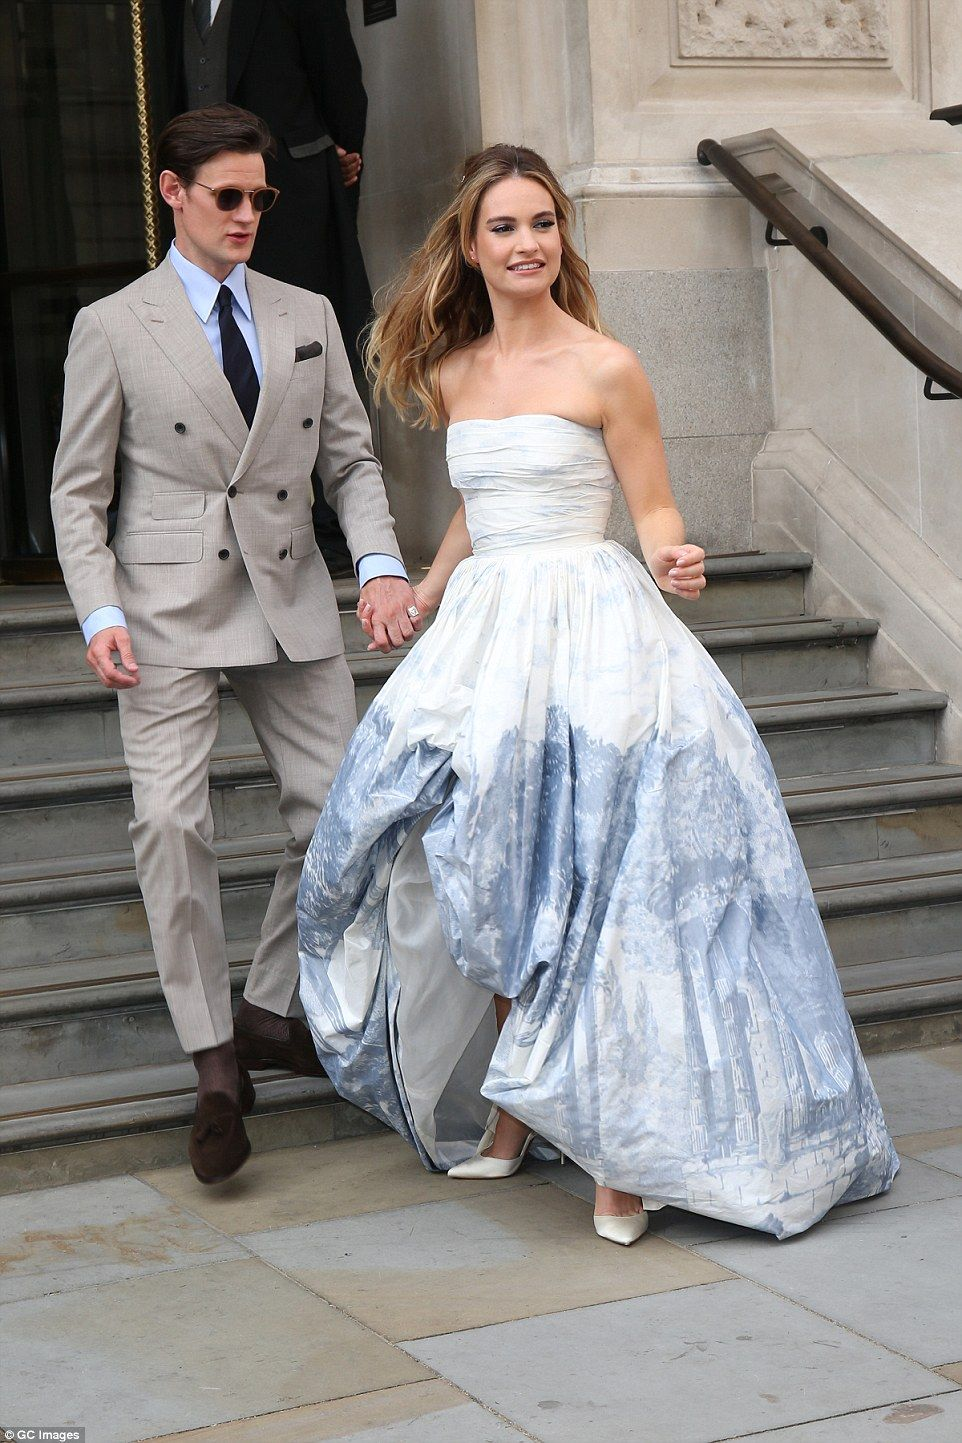 Amanda Seyfried Dr House lily james wows in strapless ivory gown at mamma mia 2